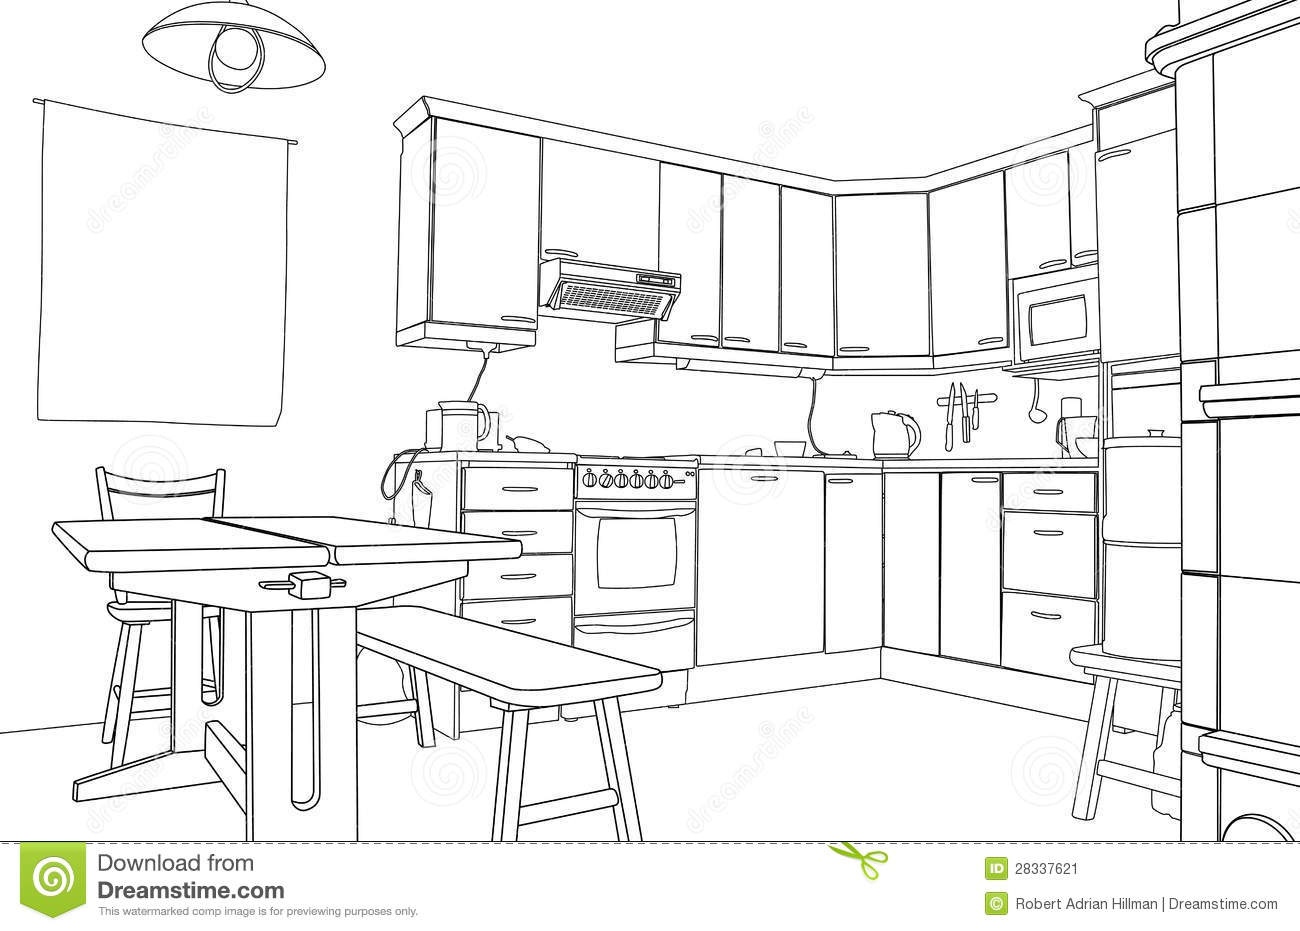 Kitchen Sketch Stock Vector Illustration Of Outline 28337621